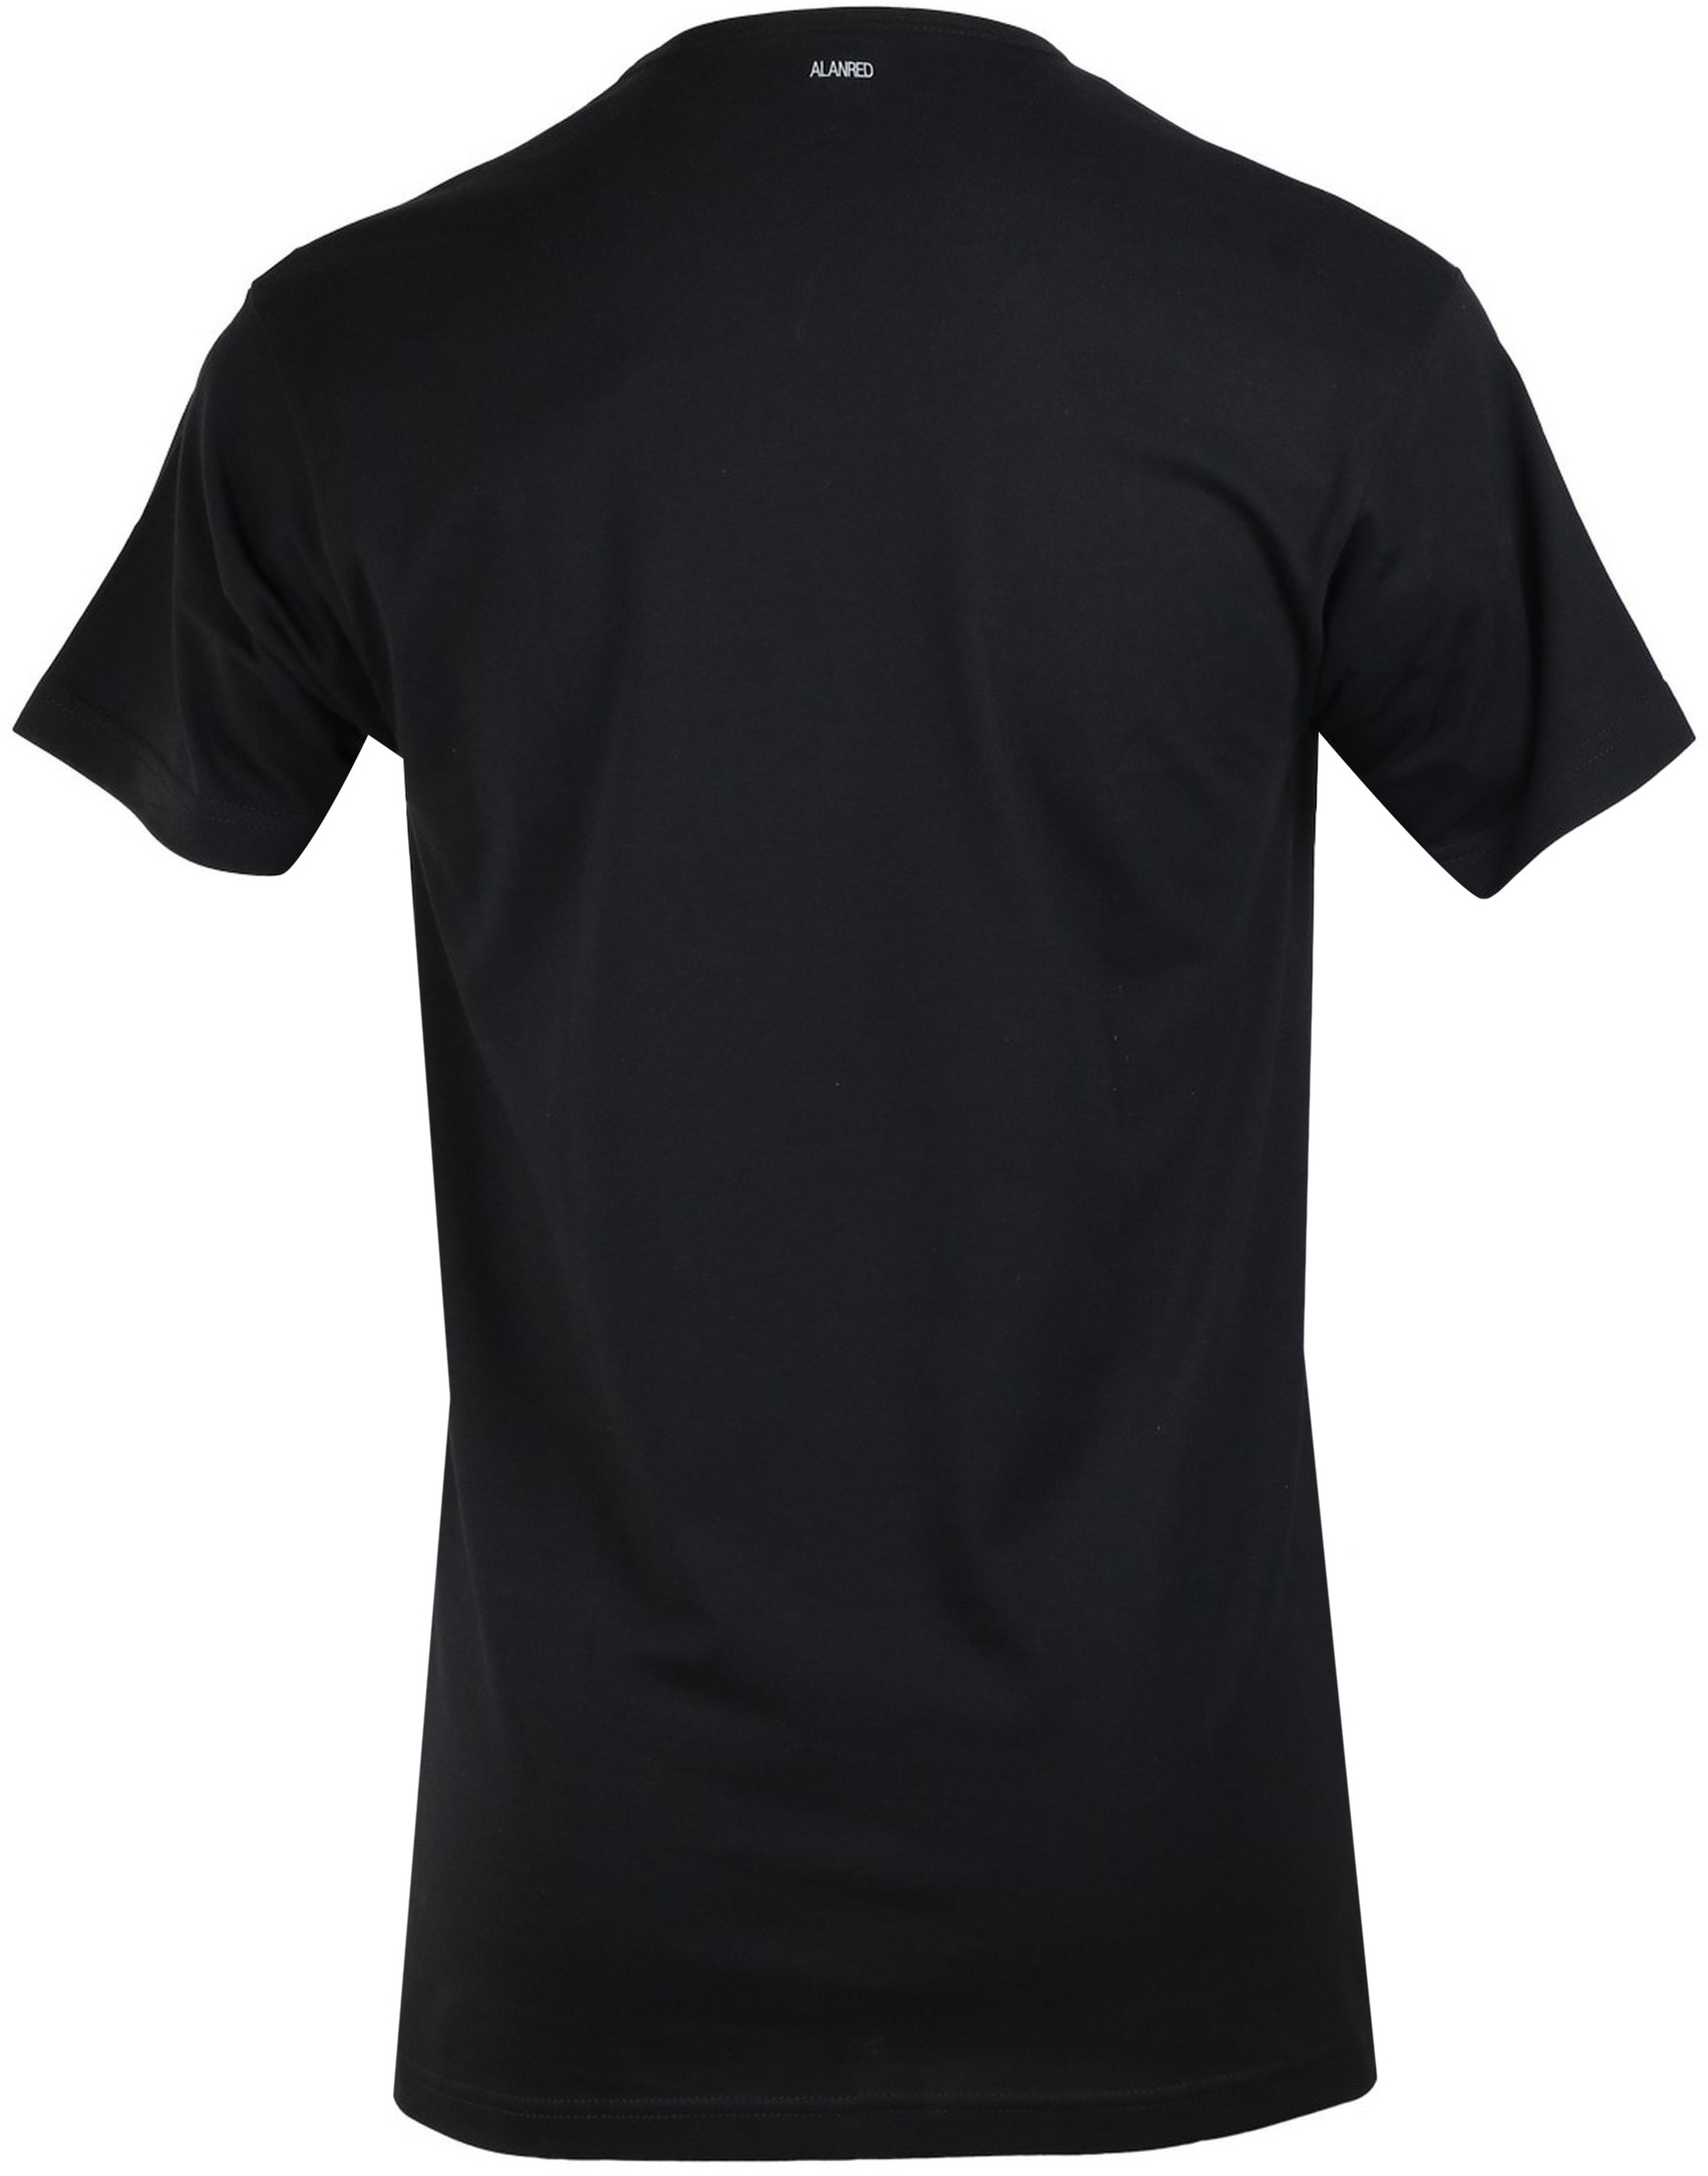 Alan Red Vermont T-Shirt V-Hals Zwart (1Pack) foto 2